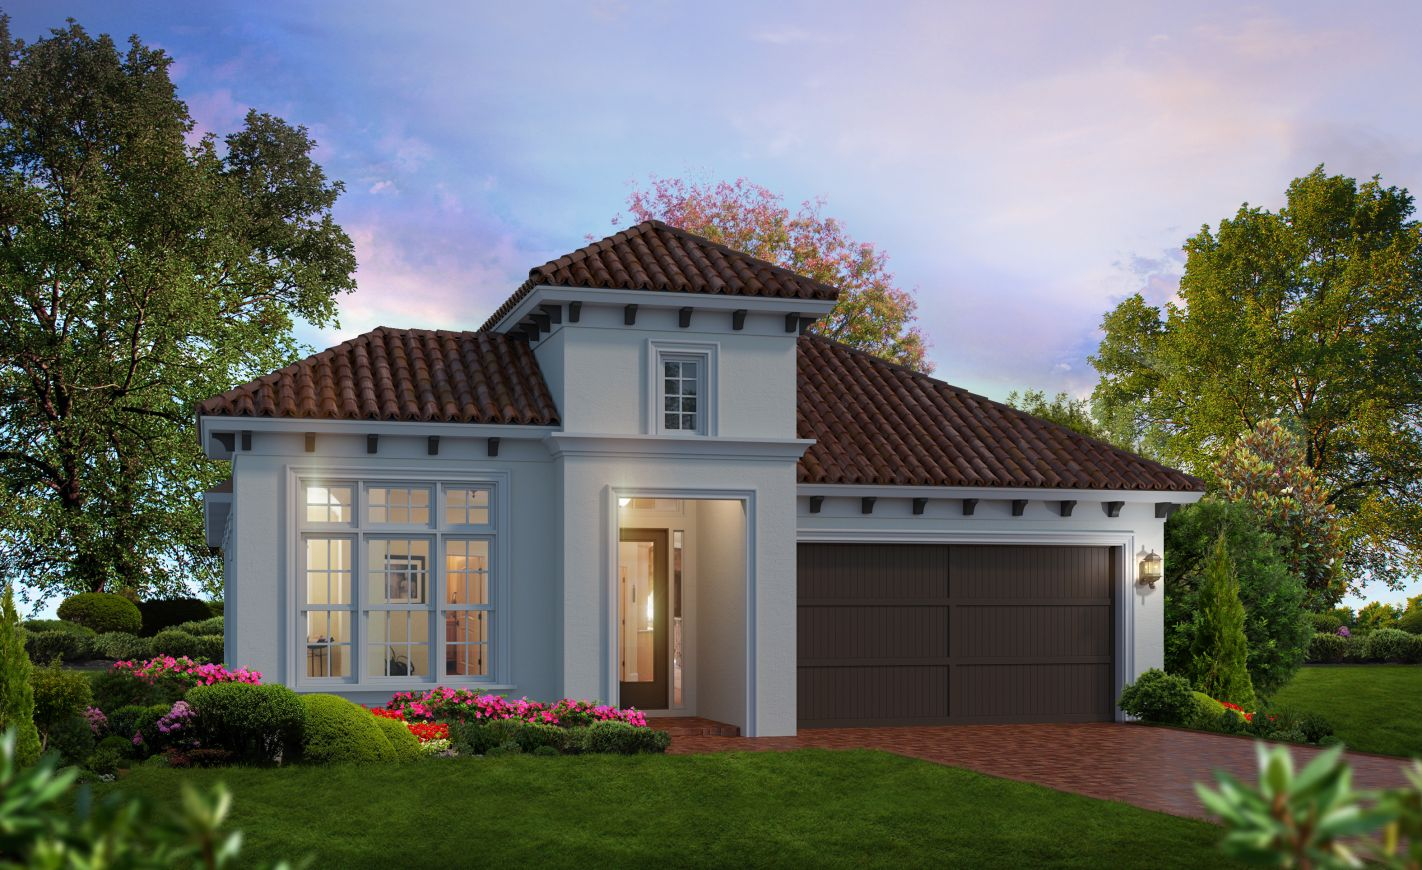 Palm Coast Homes for Sale - The Serena II at The Conservatory